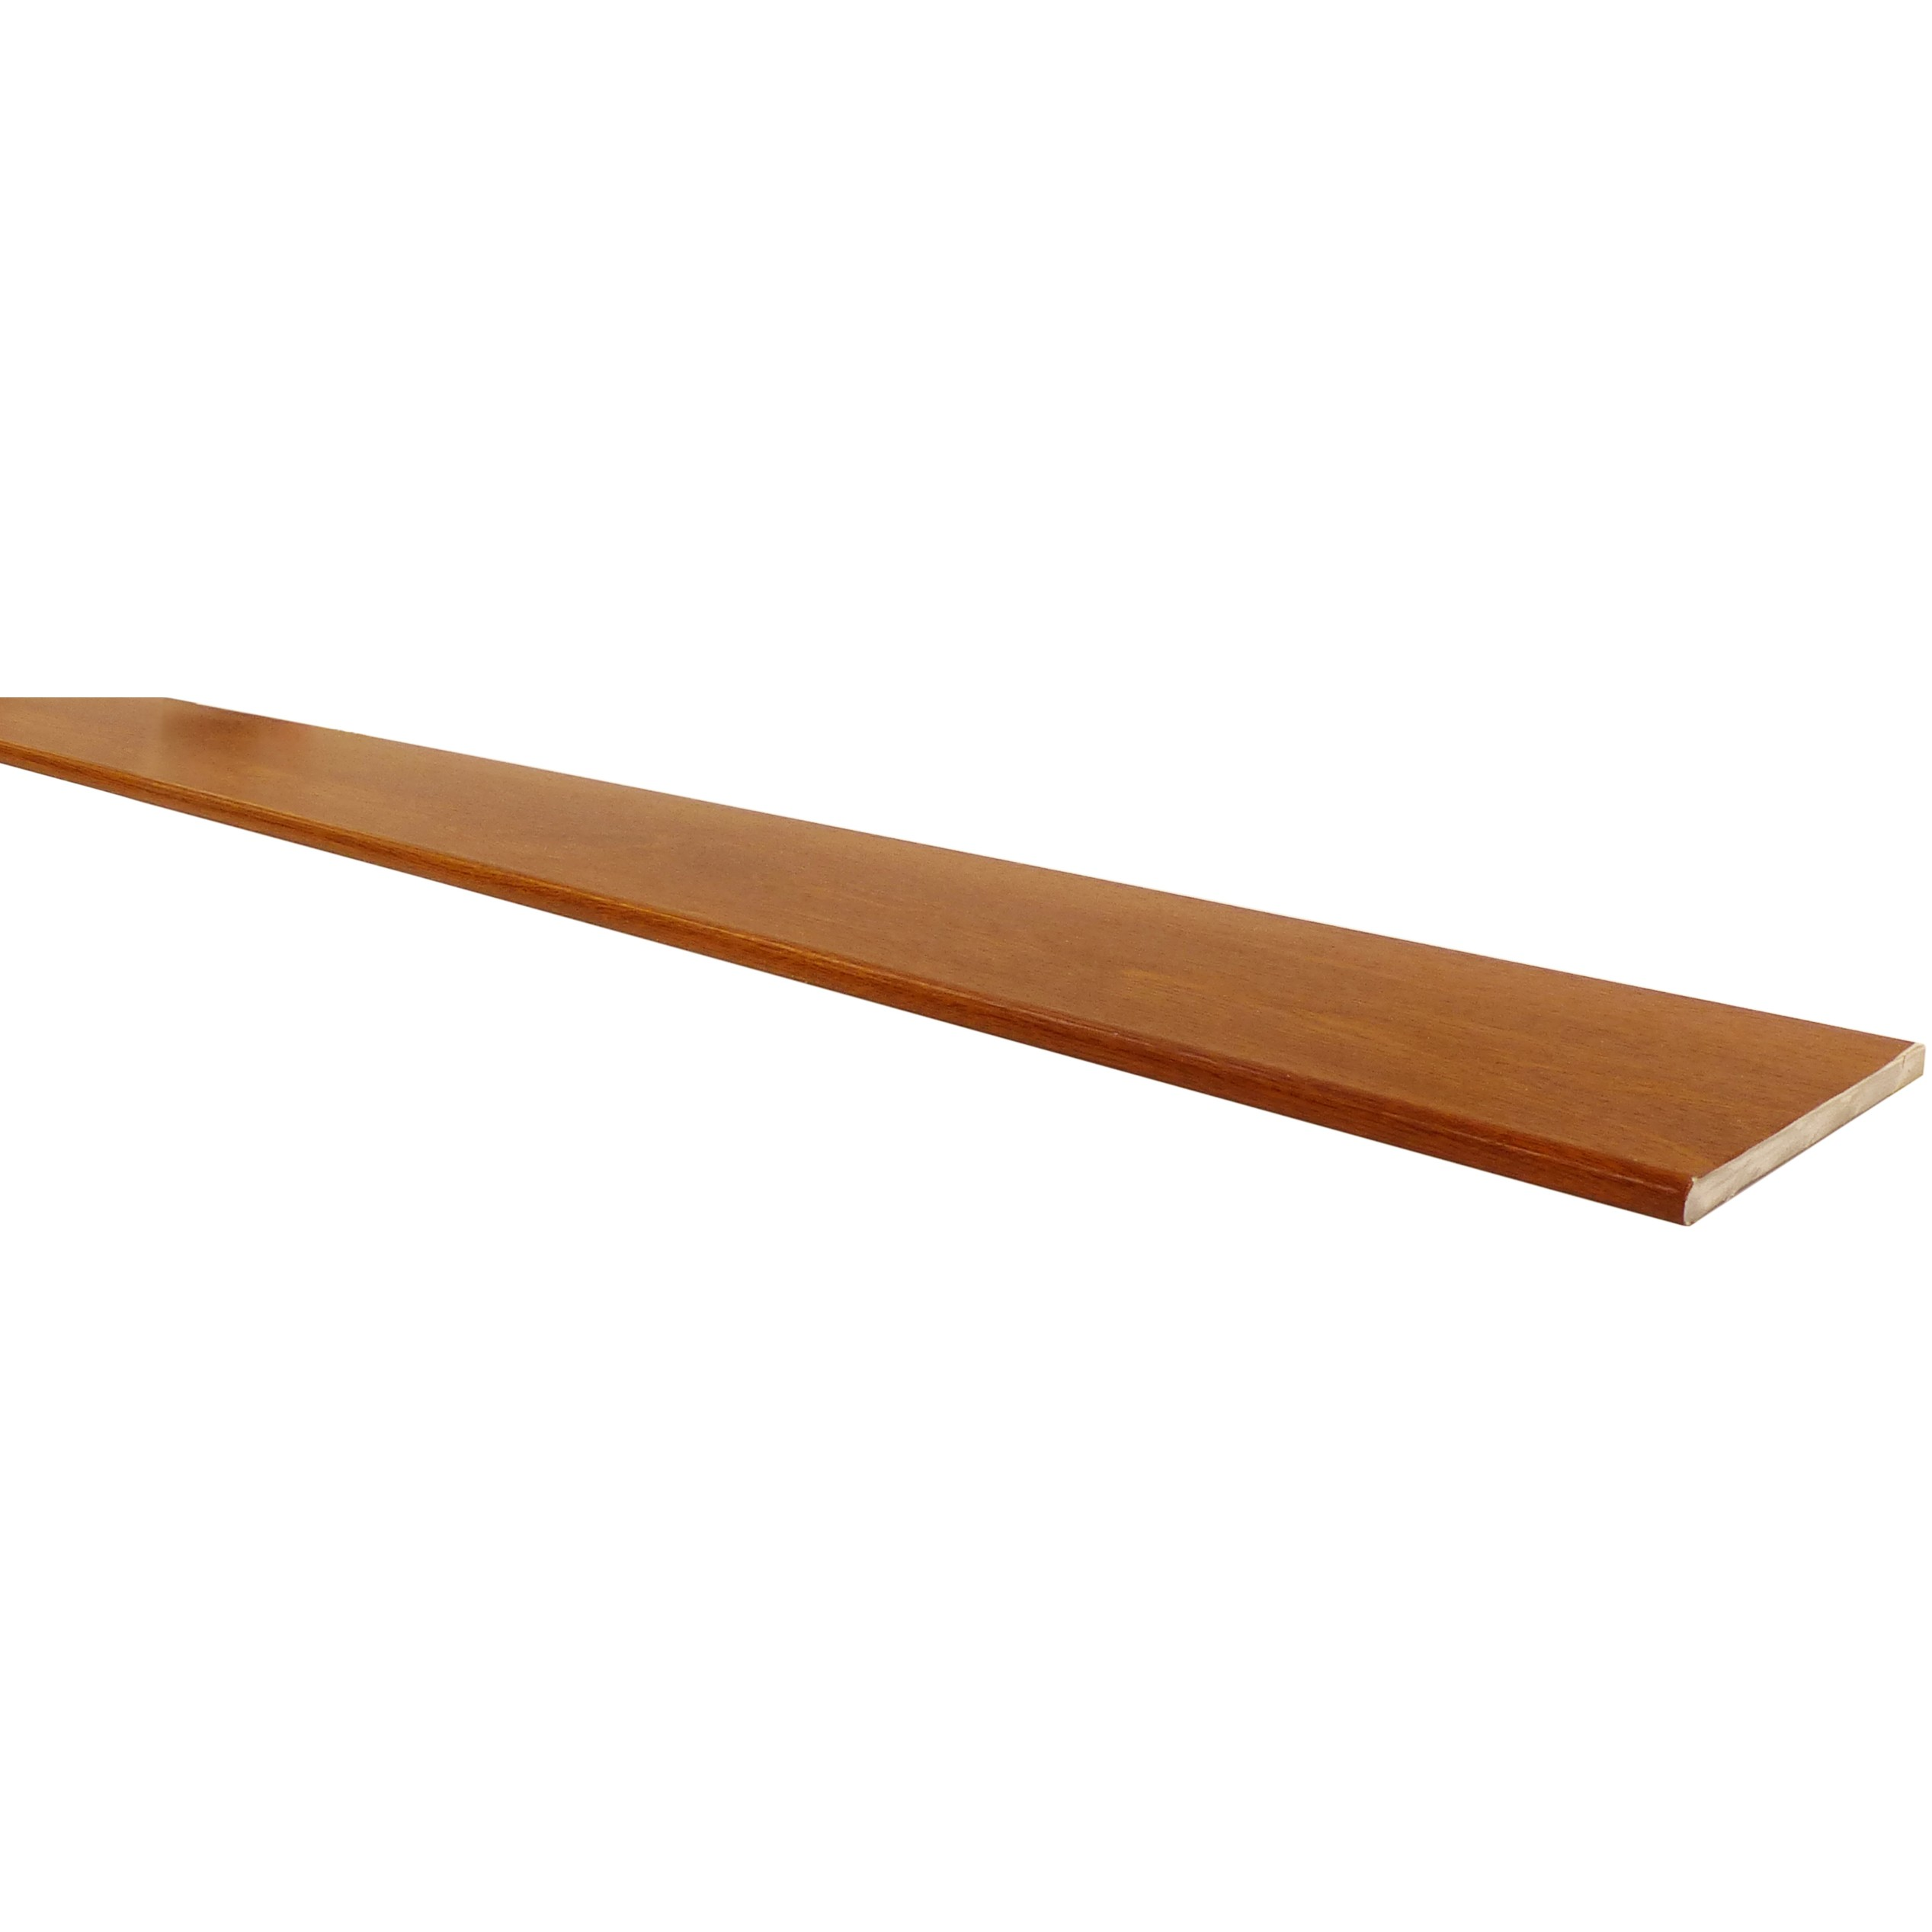 Freefoam 10mm Solid Soffit Board - Woodgrain Light Oak, 150mm, 5 metre